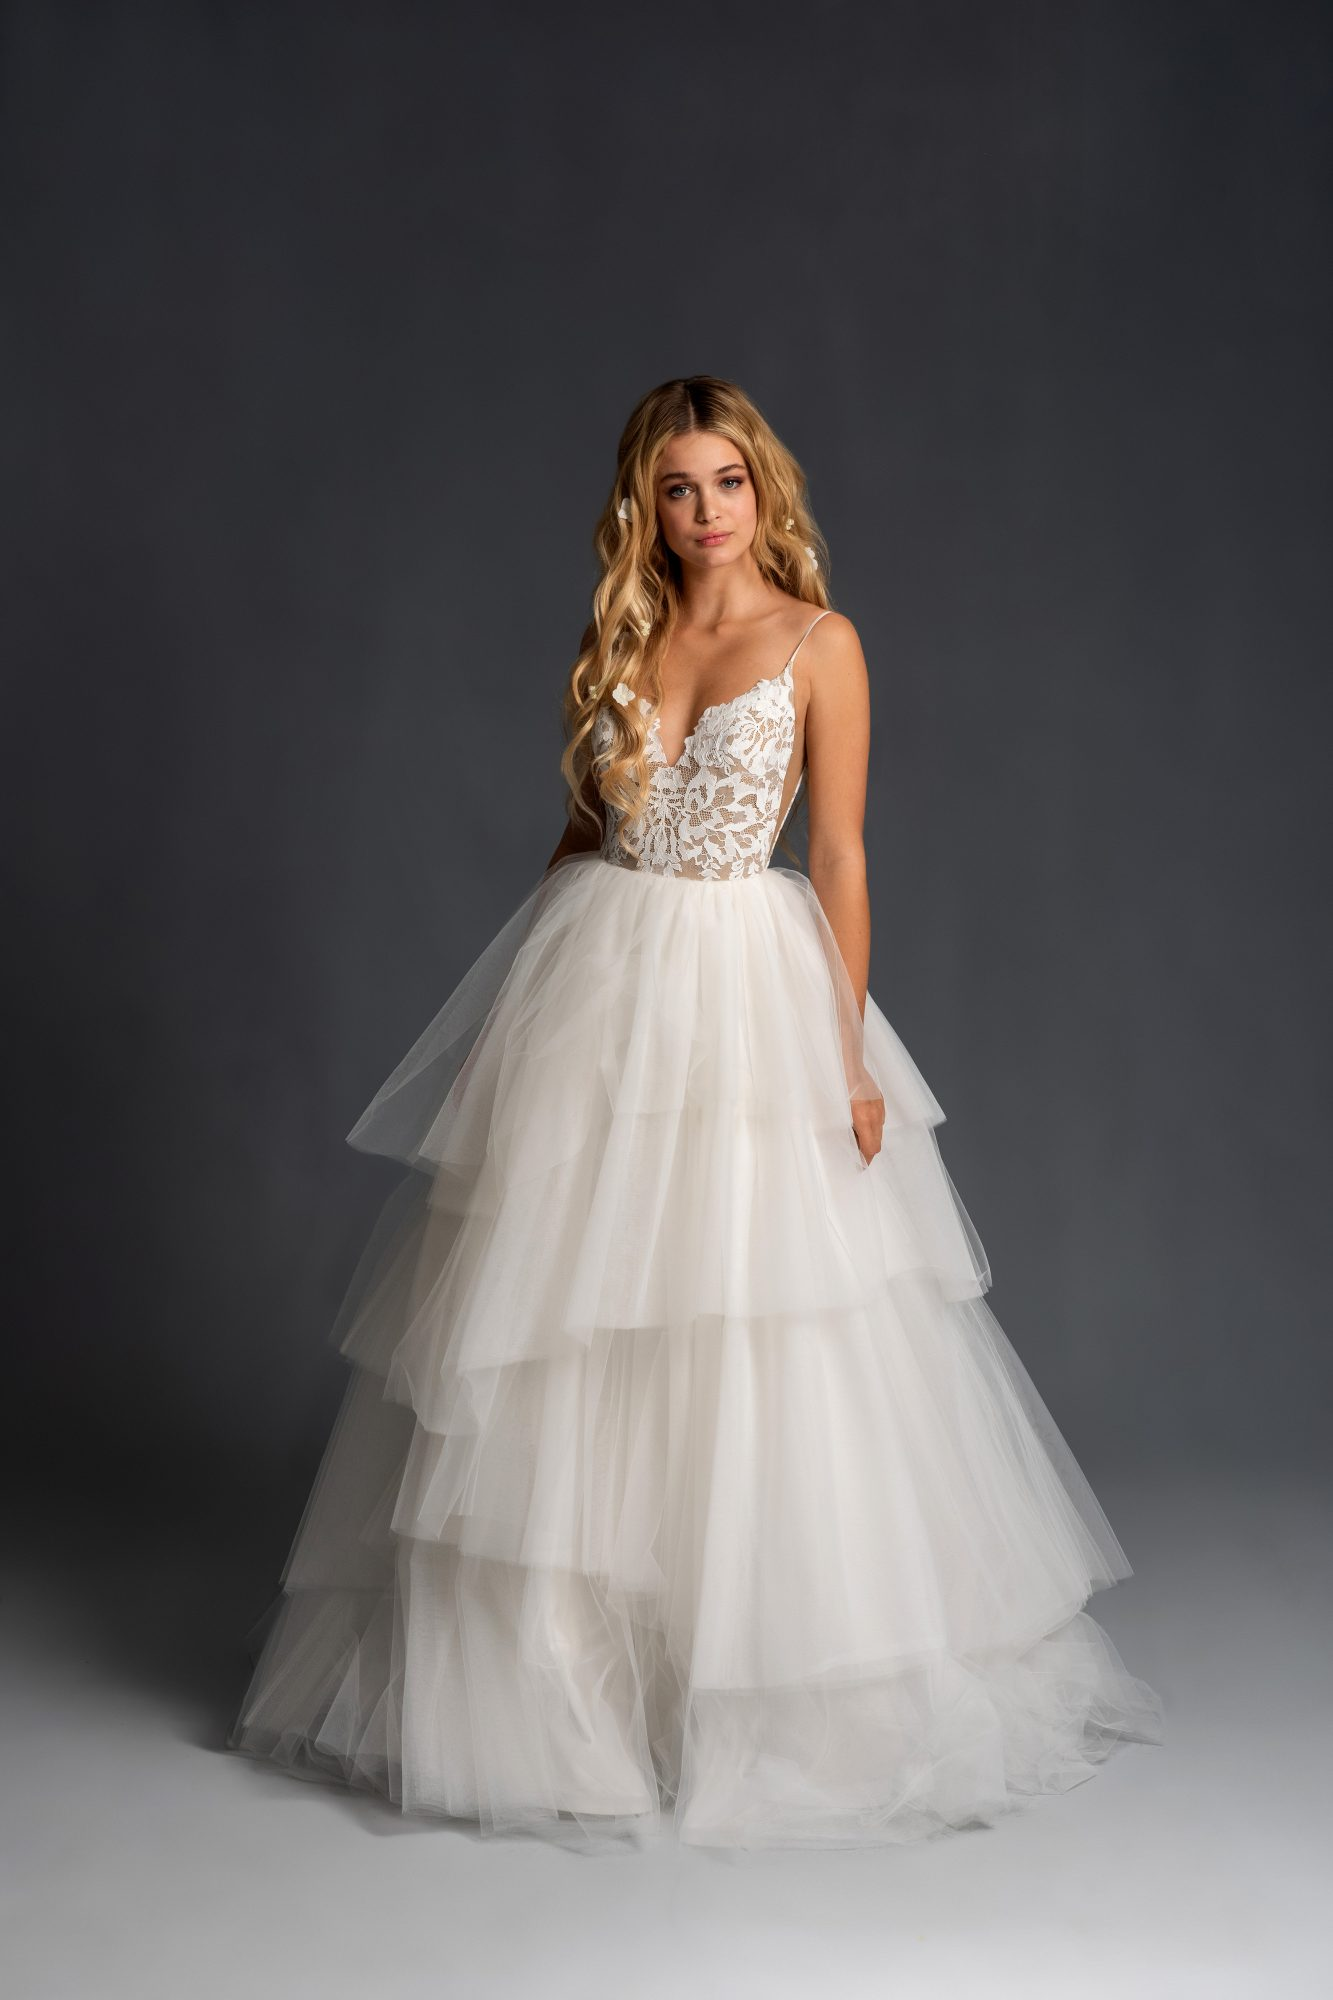 blush hayley paige sleeveless lace tulle tiers ballgown wedding dress spring 2020